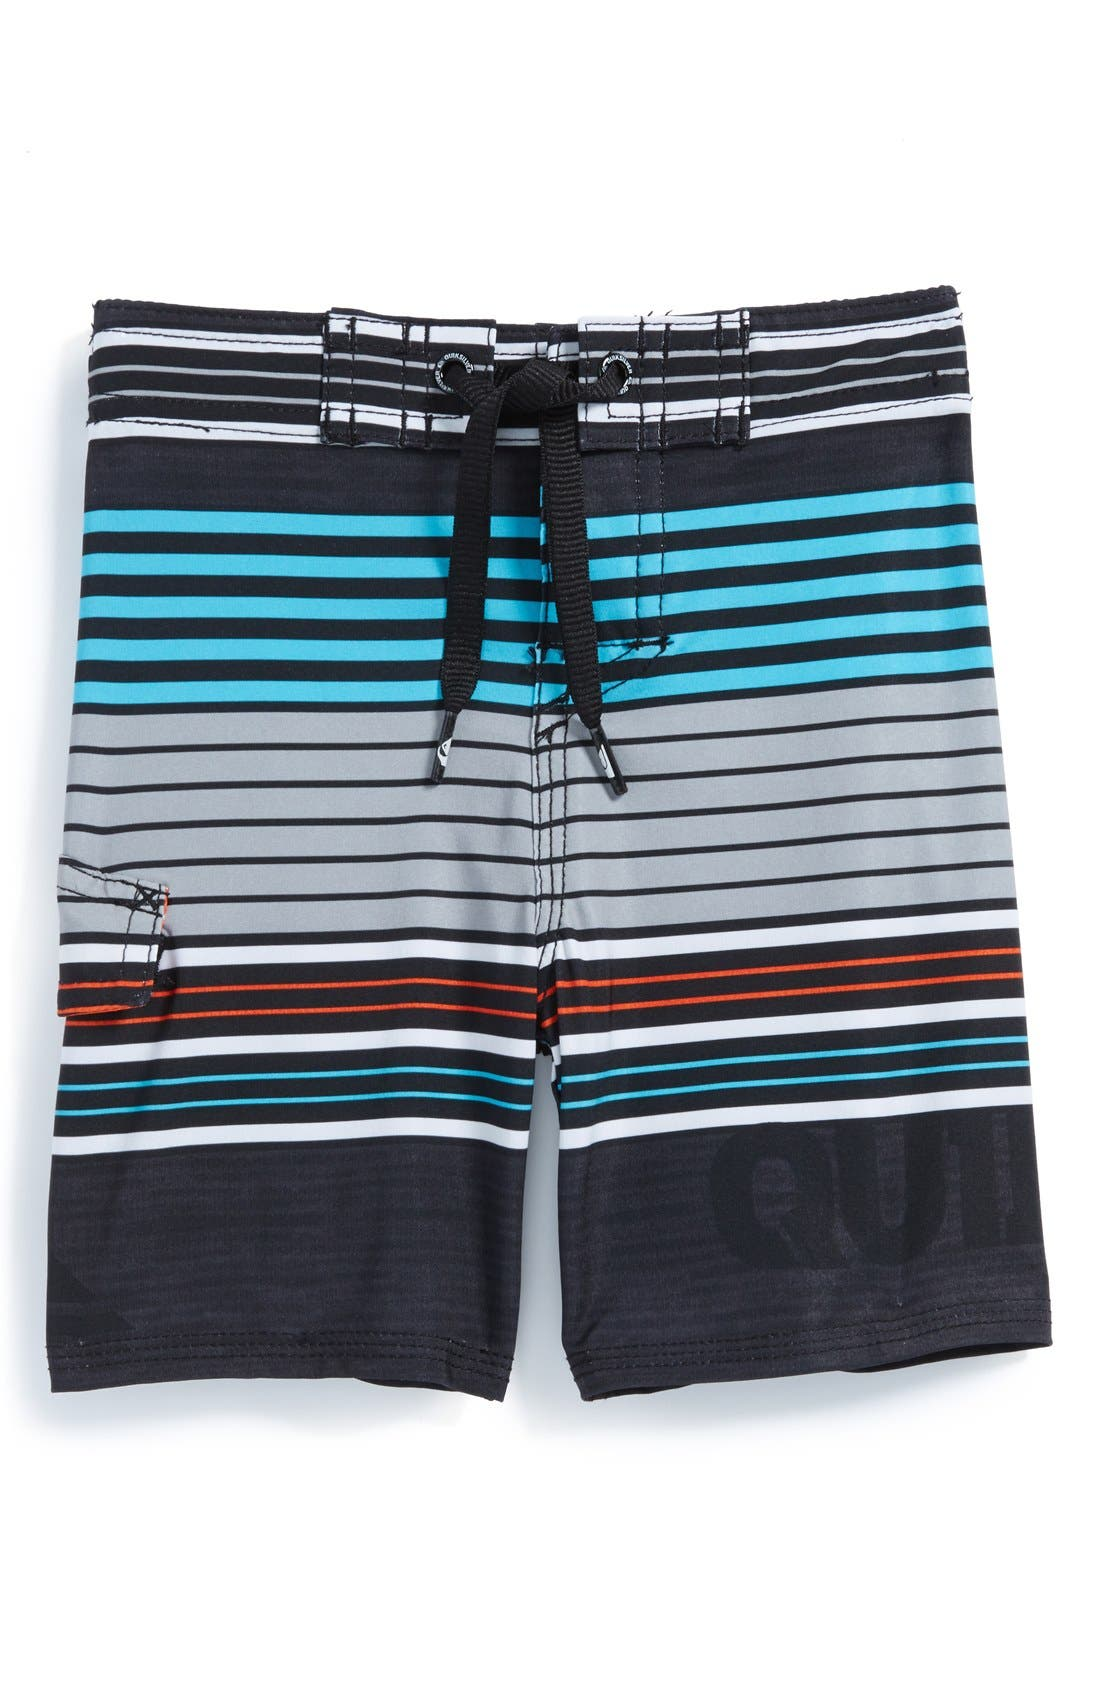 Alternate Image 1 Selected - Quiksilver 'Cerrano' Board Shorts (Baby Boys)